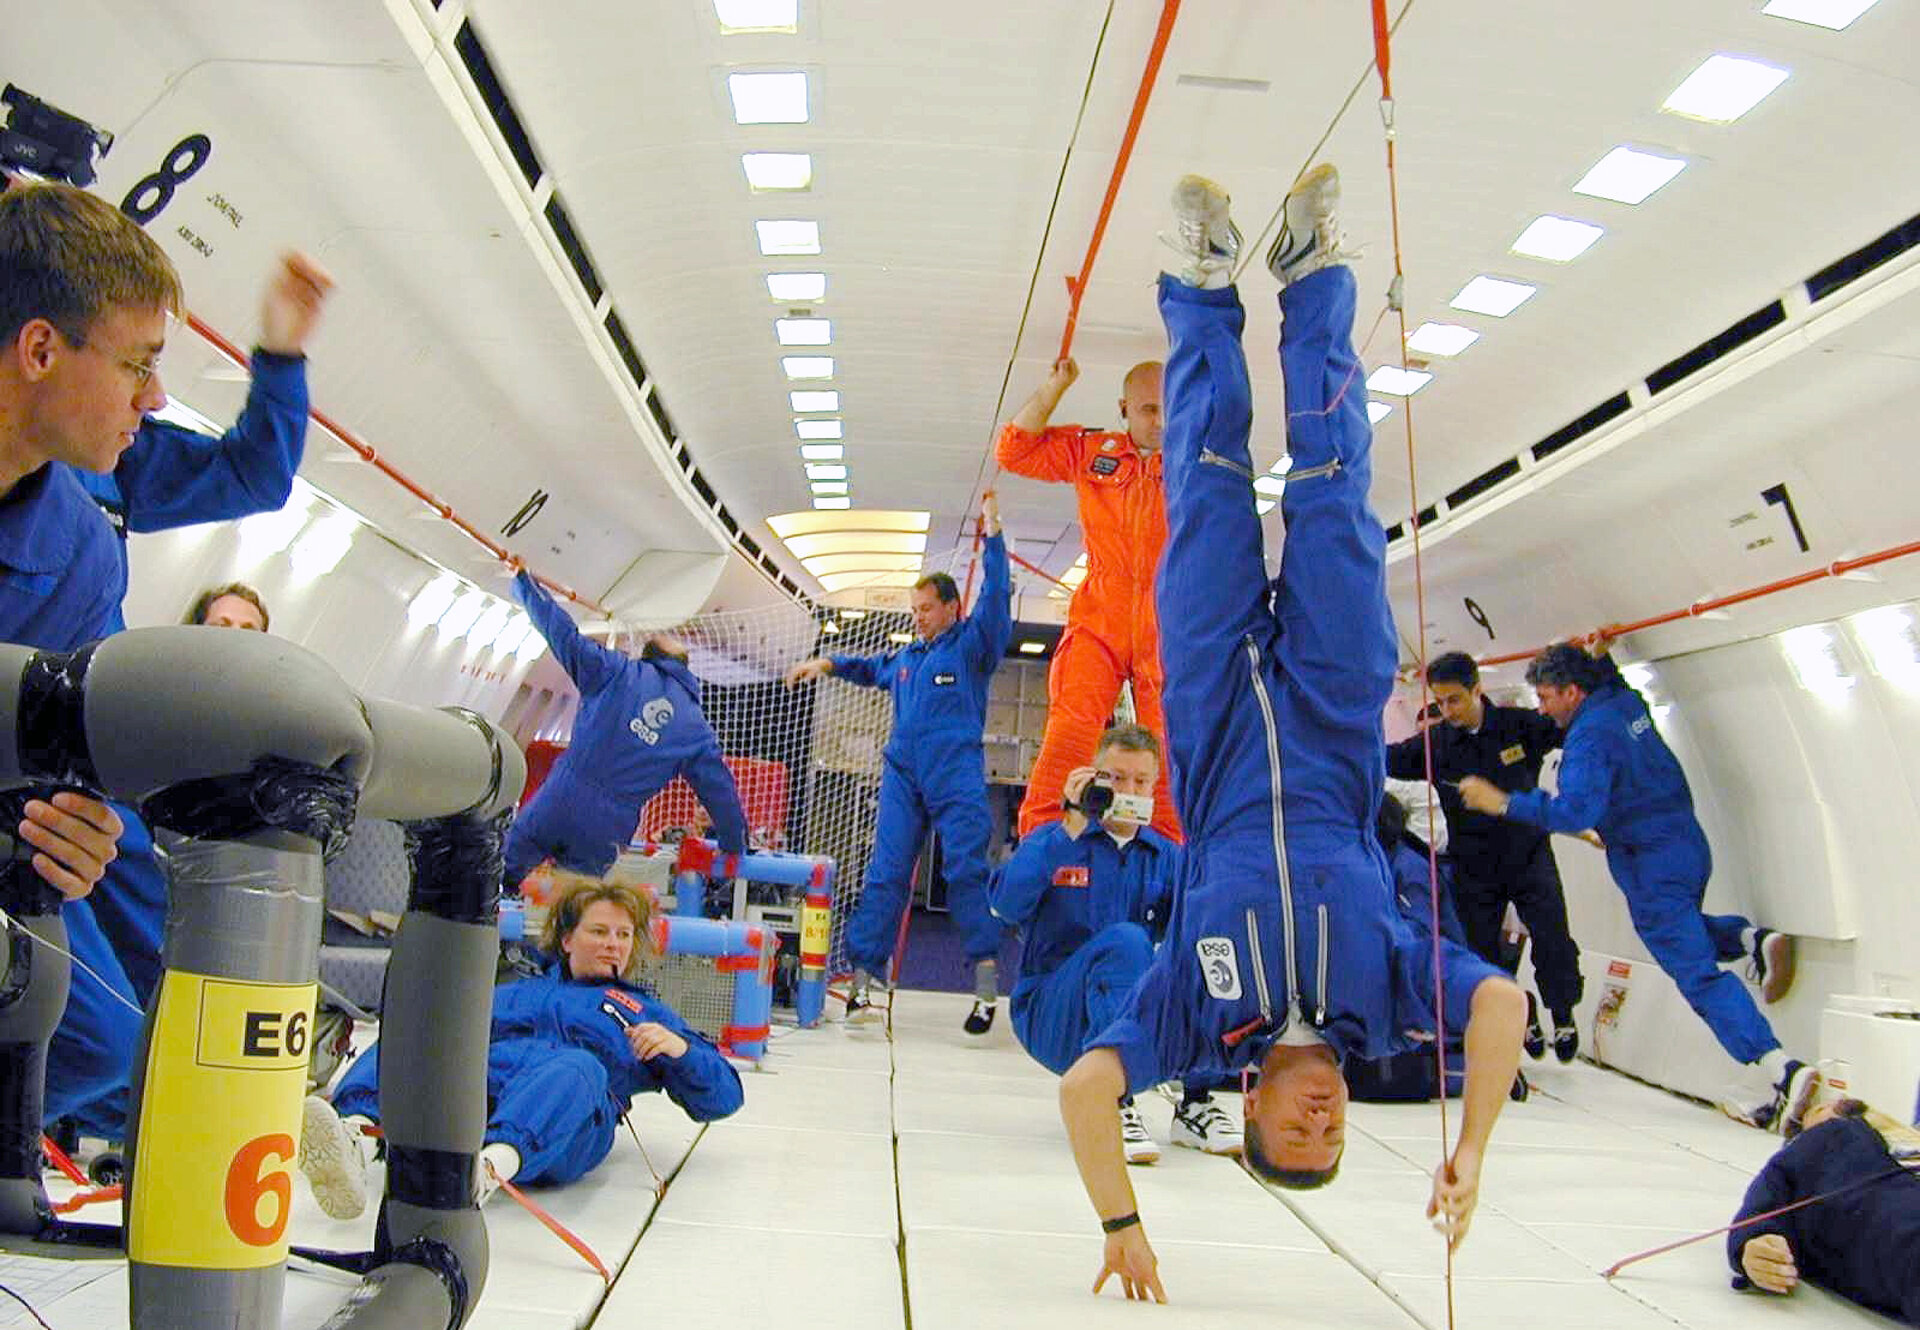 Floating upside down in Zero-G Airbus